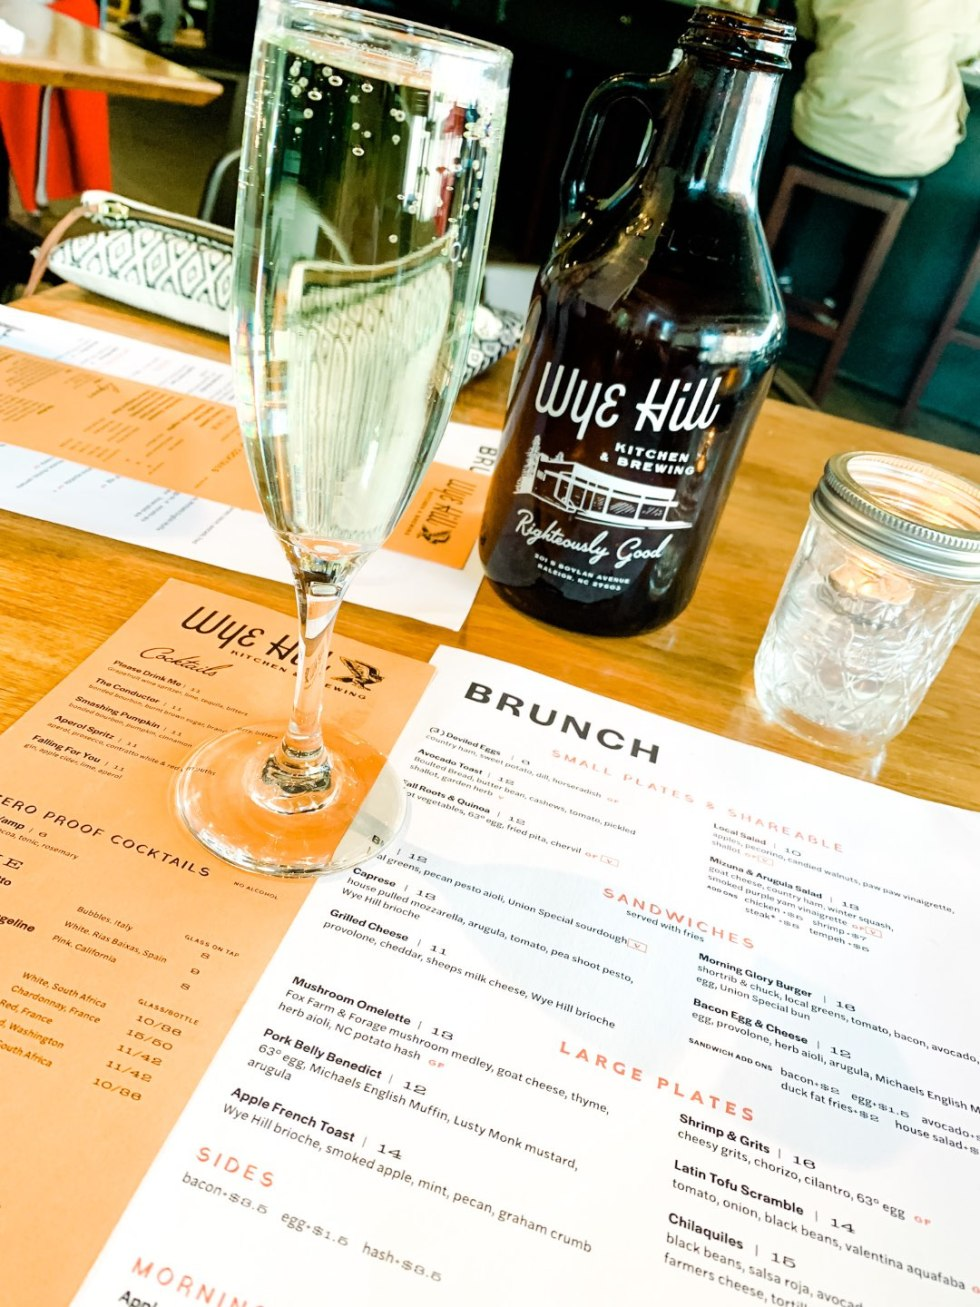 Where to Get Brunch in Raleigh: the 7 Best Spots - I'm Fixin' To - @mbg0112 | Brunch in Raleigh by popular Raleigh blog, I'm Fixin To: image of Whiskey Kitchen menu.